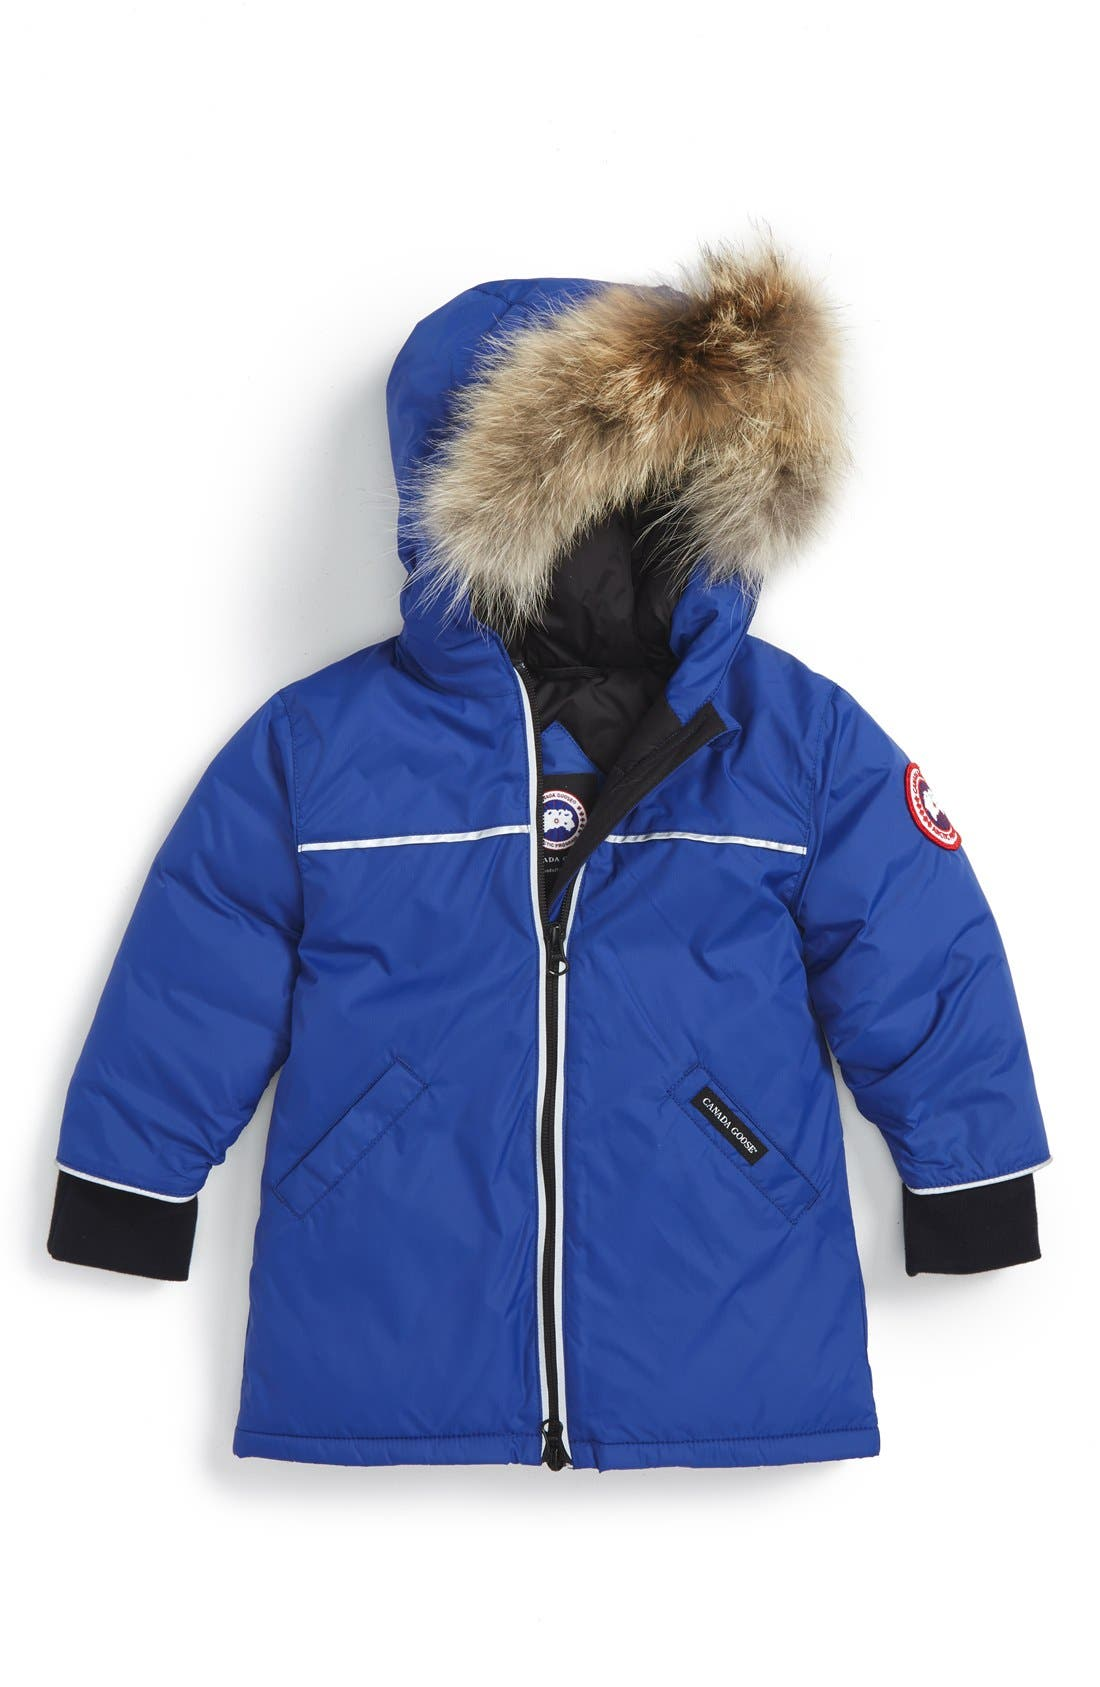 Main Image - Canada Goose 'Reese' Down Jacket with Genuine Coyote Fur Trim (Baby)